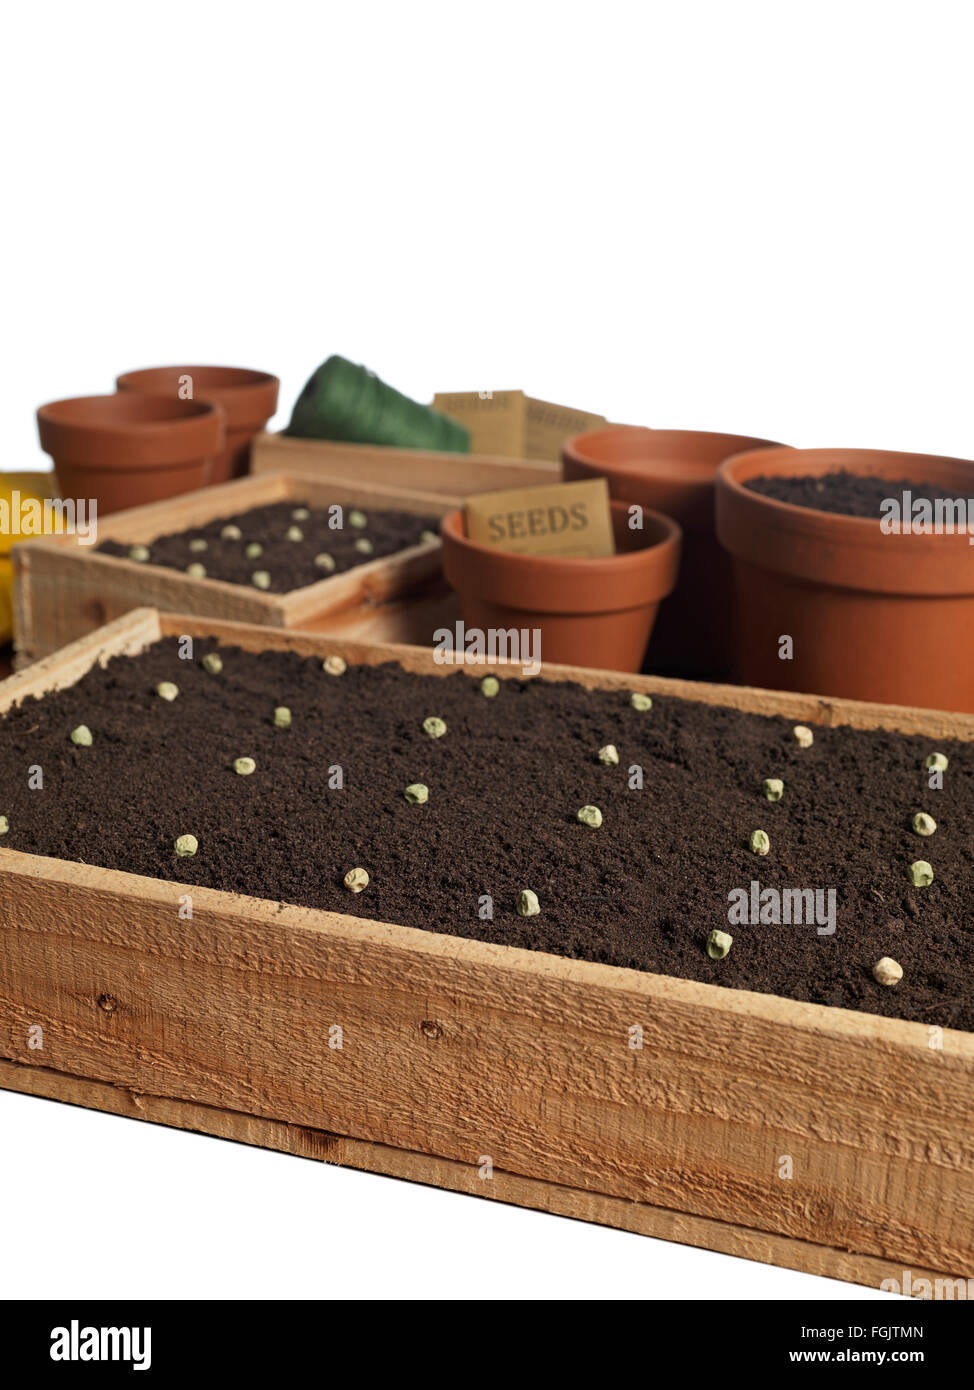 Seedling tray filled with organic soil and seeds - Stock Image